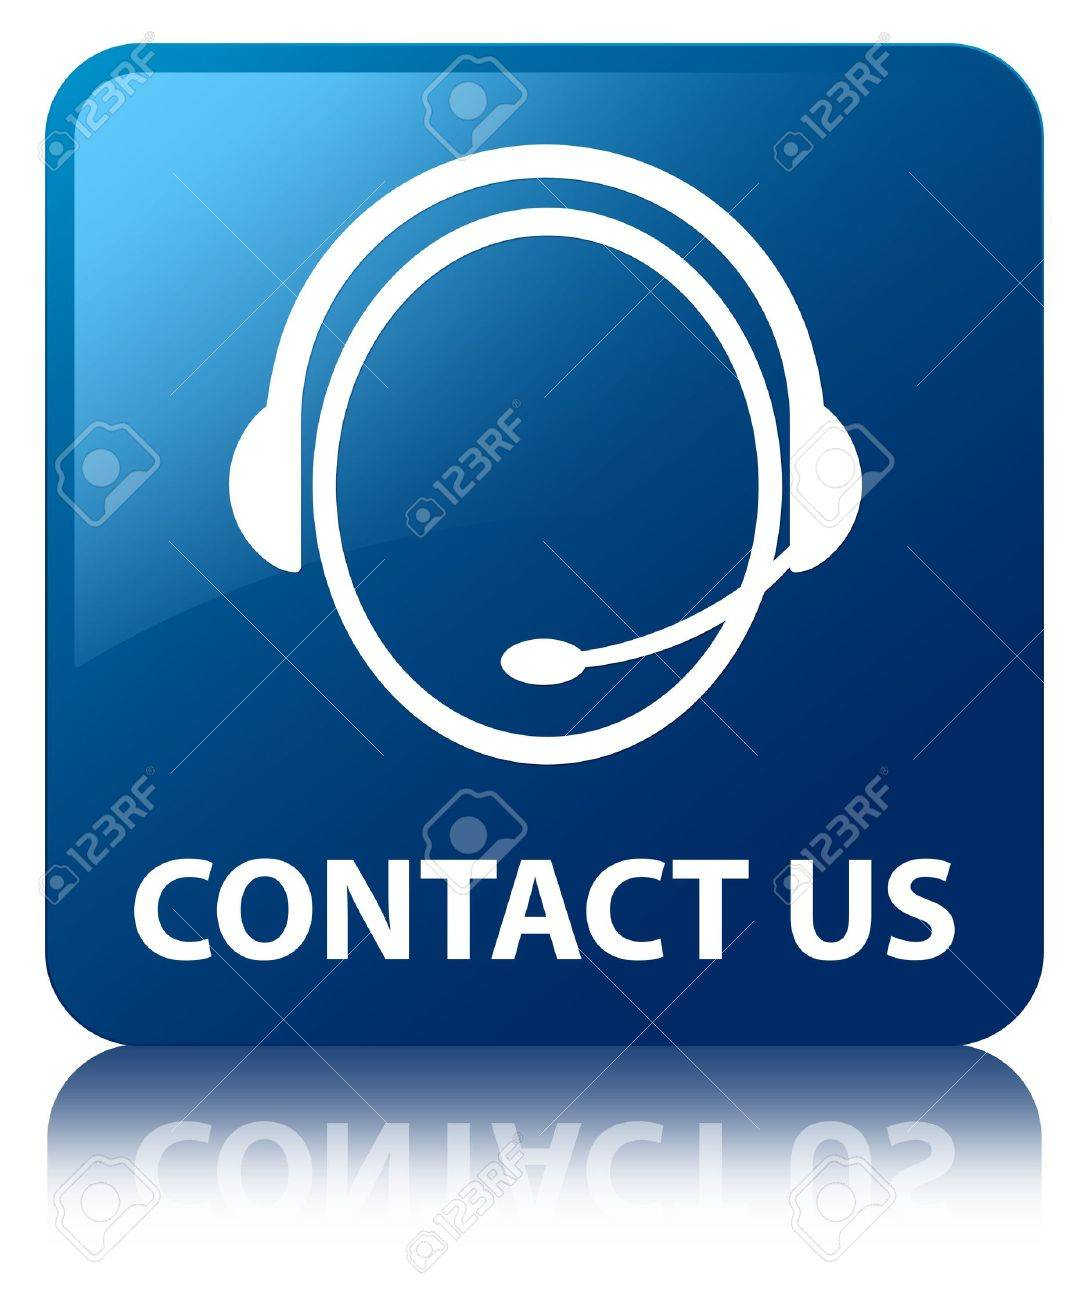 Contact us  customer care headphone  glossy blue reflected square button Stock Photo - 16583595